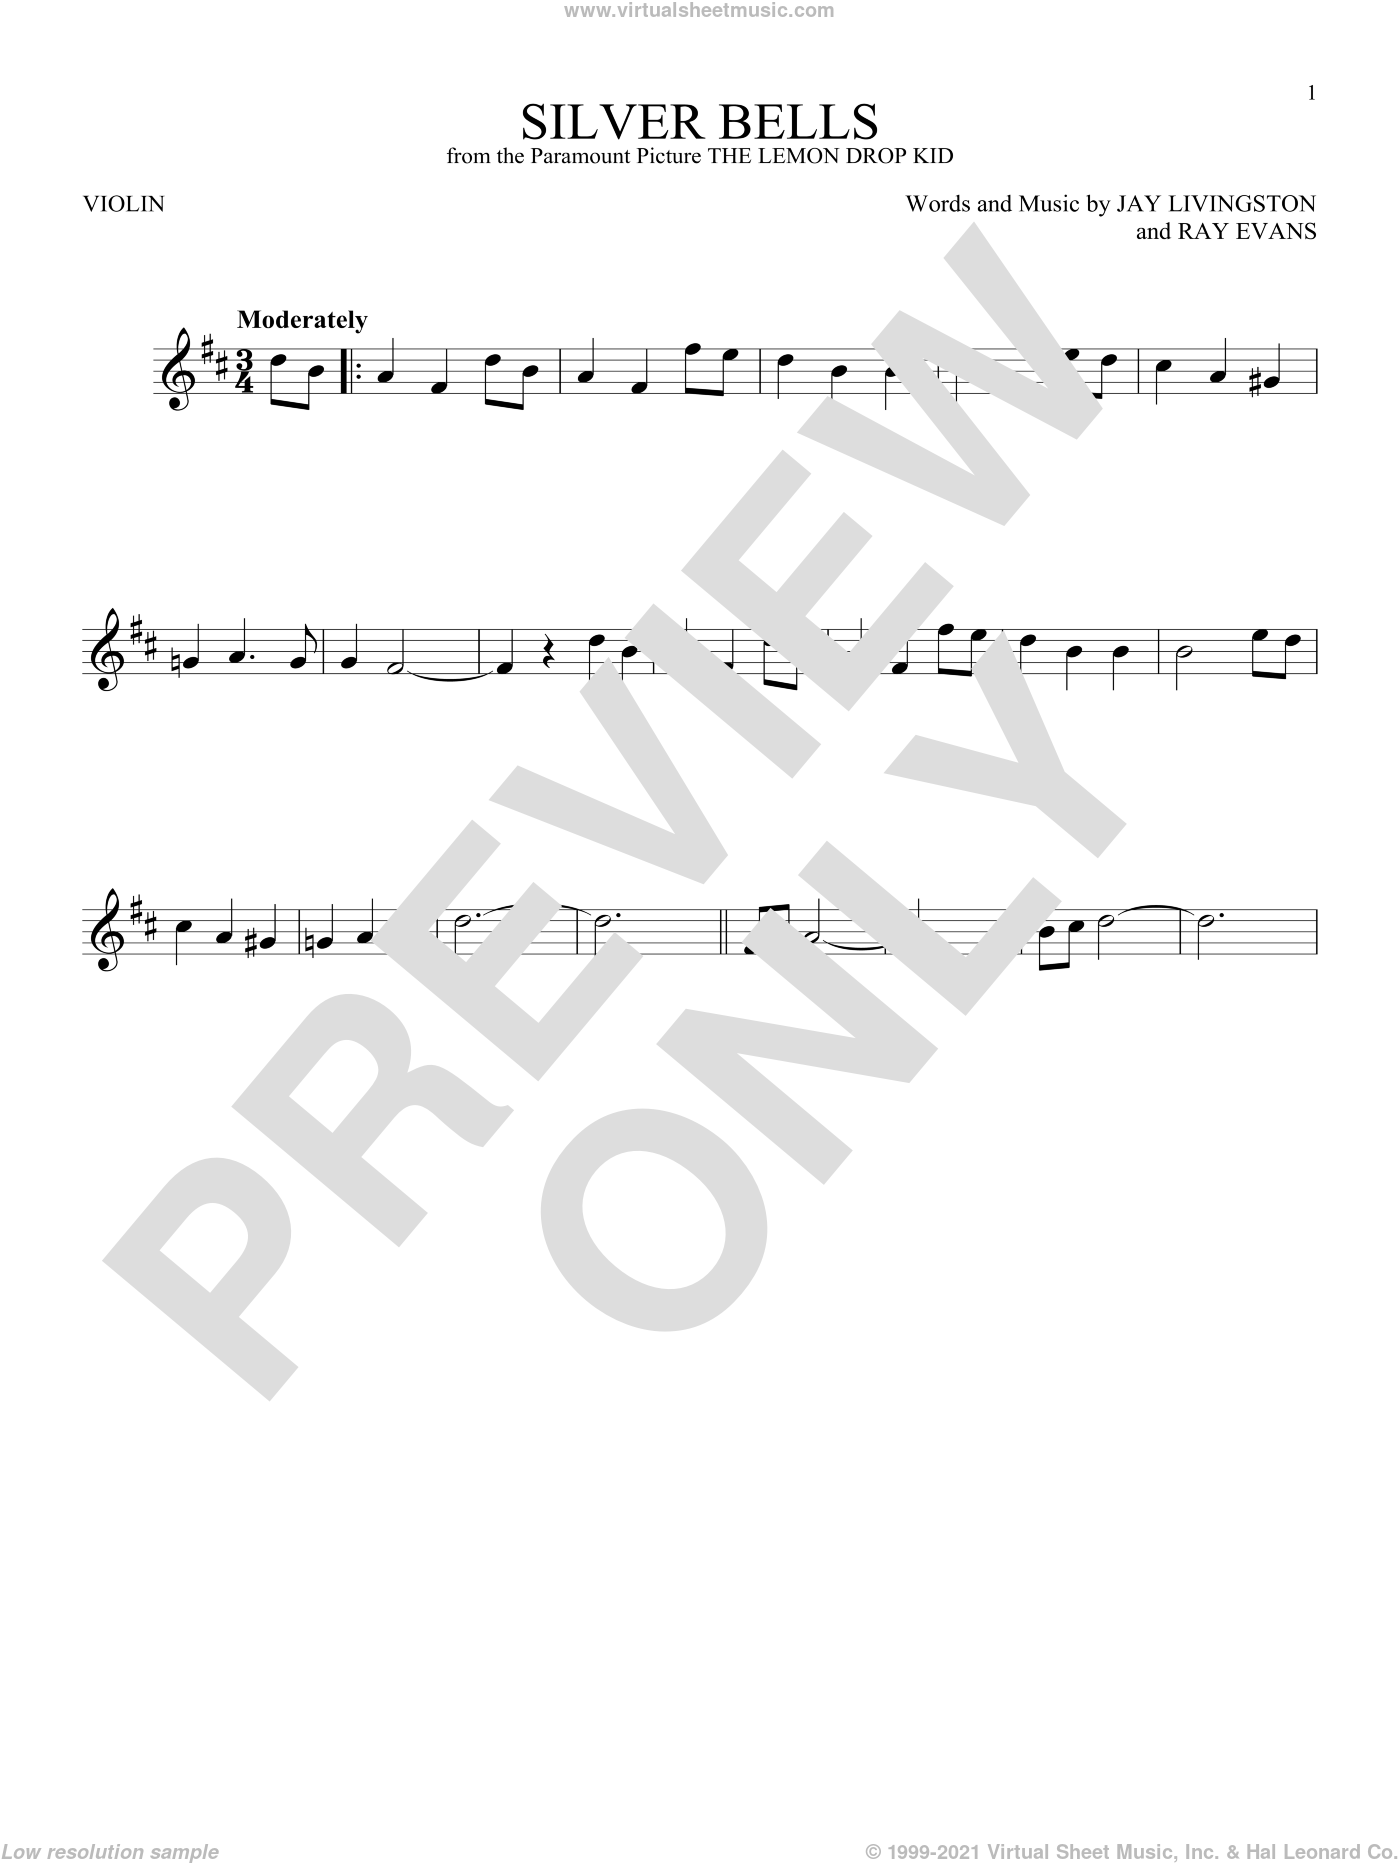 Silver Bells sheet music for violin solo by Ray Evans